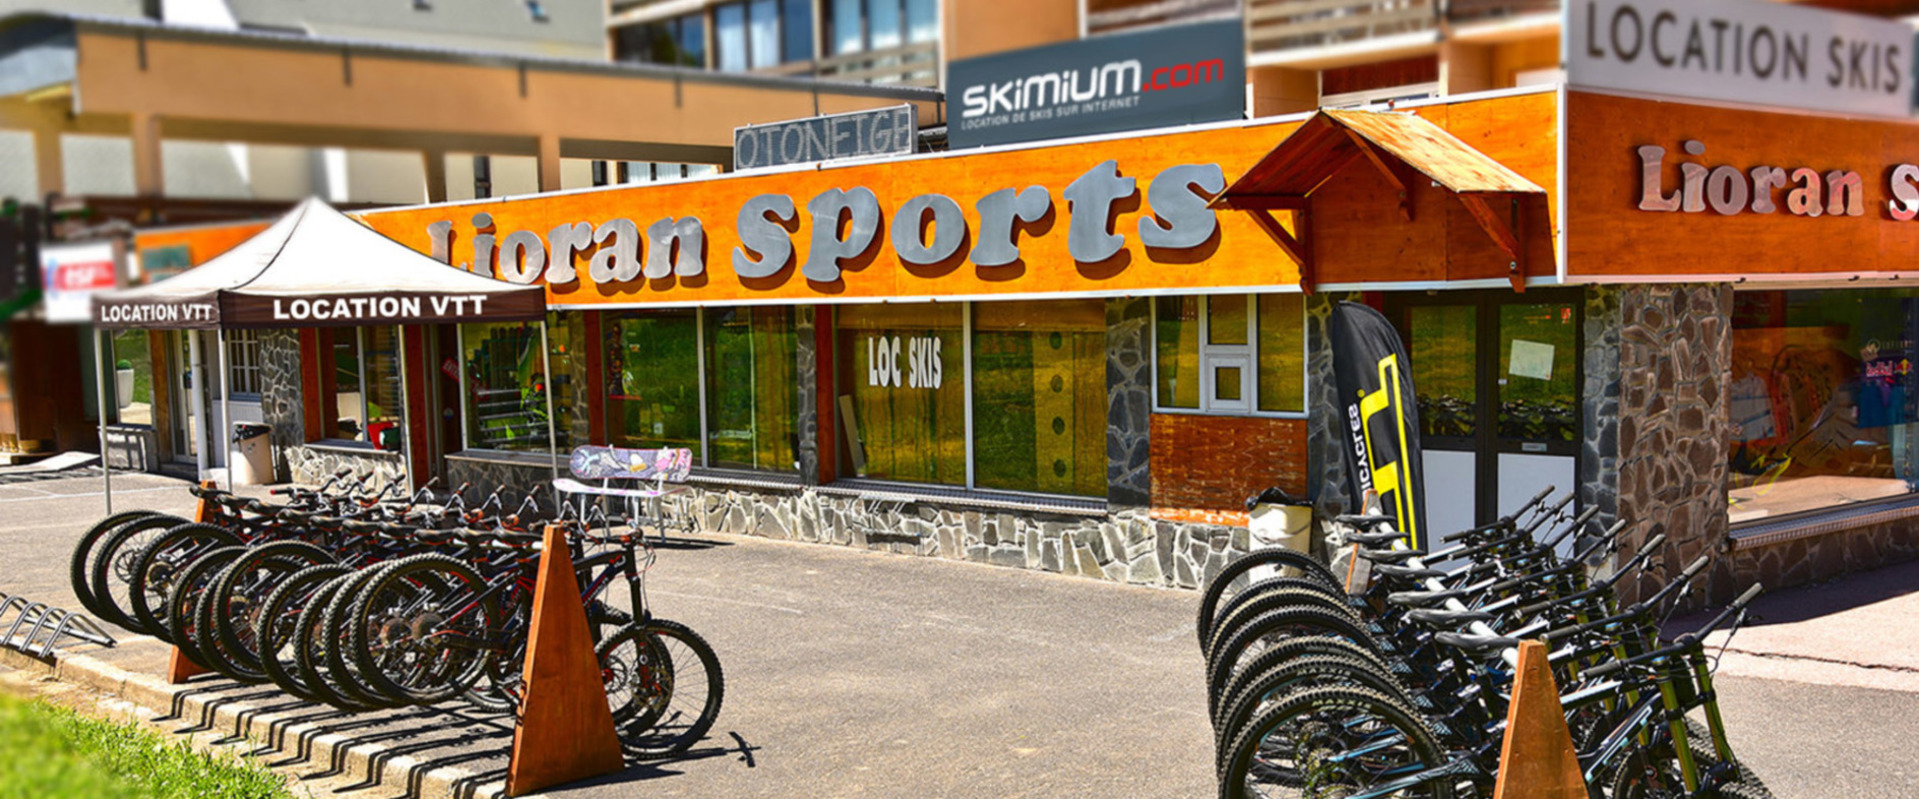 Location Ski LIORAN SPORTS location de skis et surf le lioran Location VTT